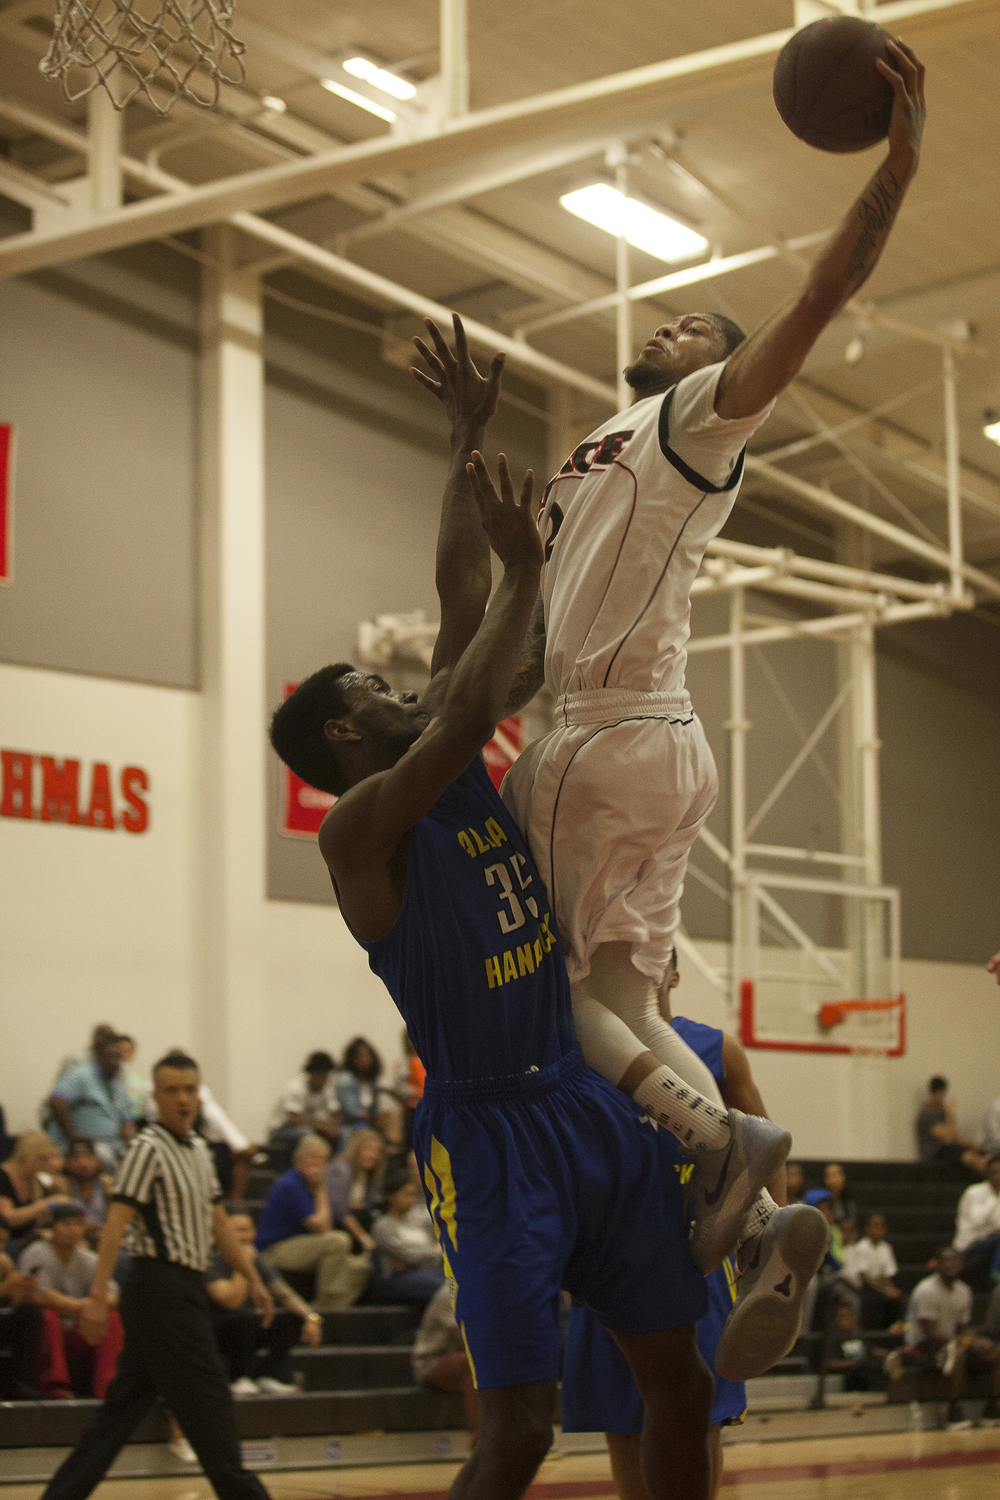 Hancock center Tim Ford guards Kenny Stenhouse as he attempts a dunk during a Pierce home game on Saturday, Feb. 13, 2016 in Woodland Hills, Calif.